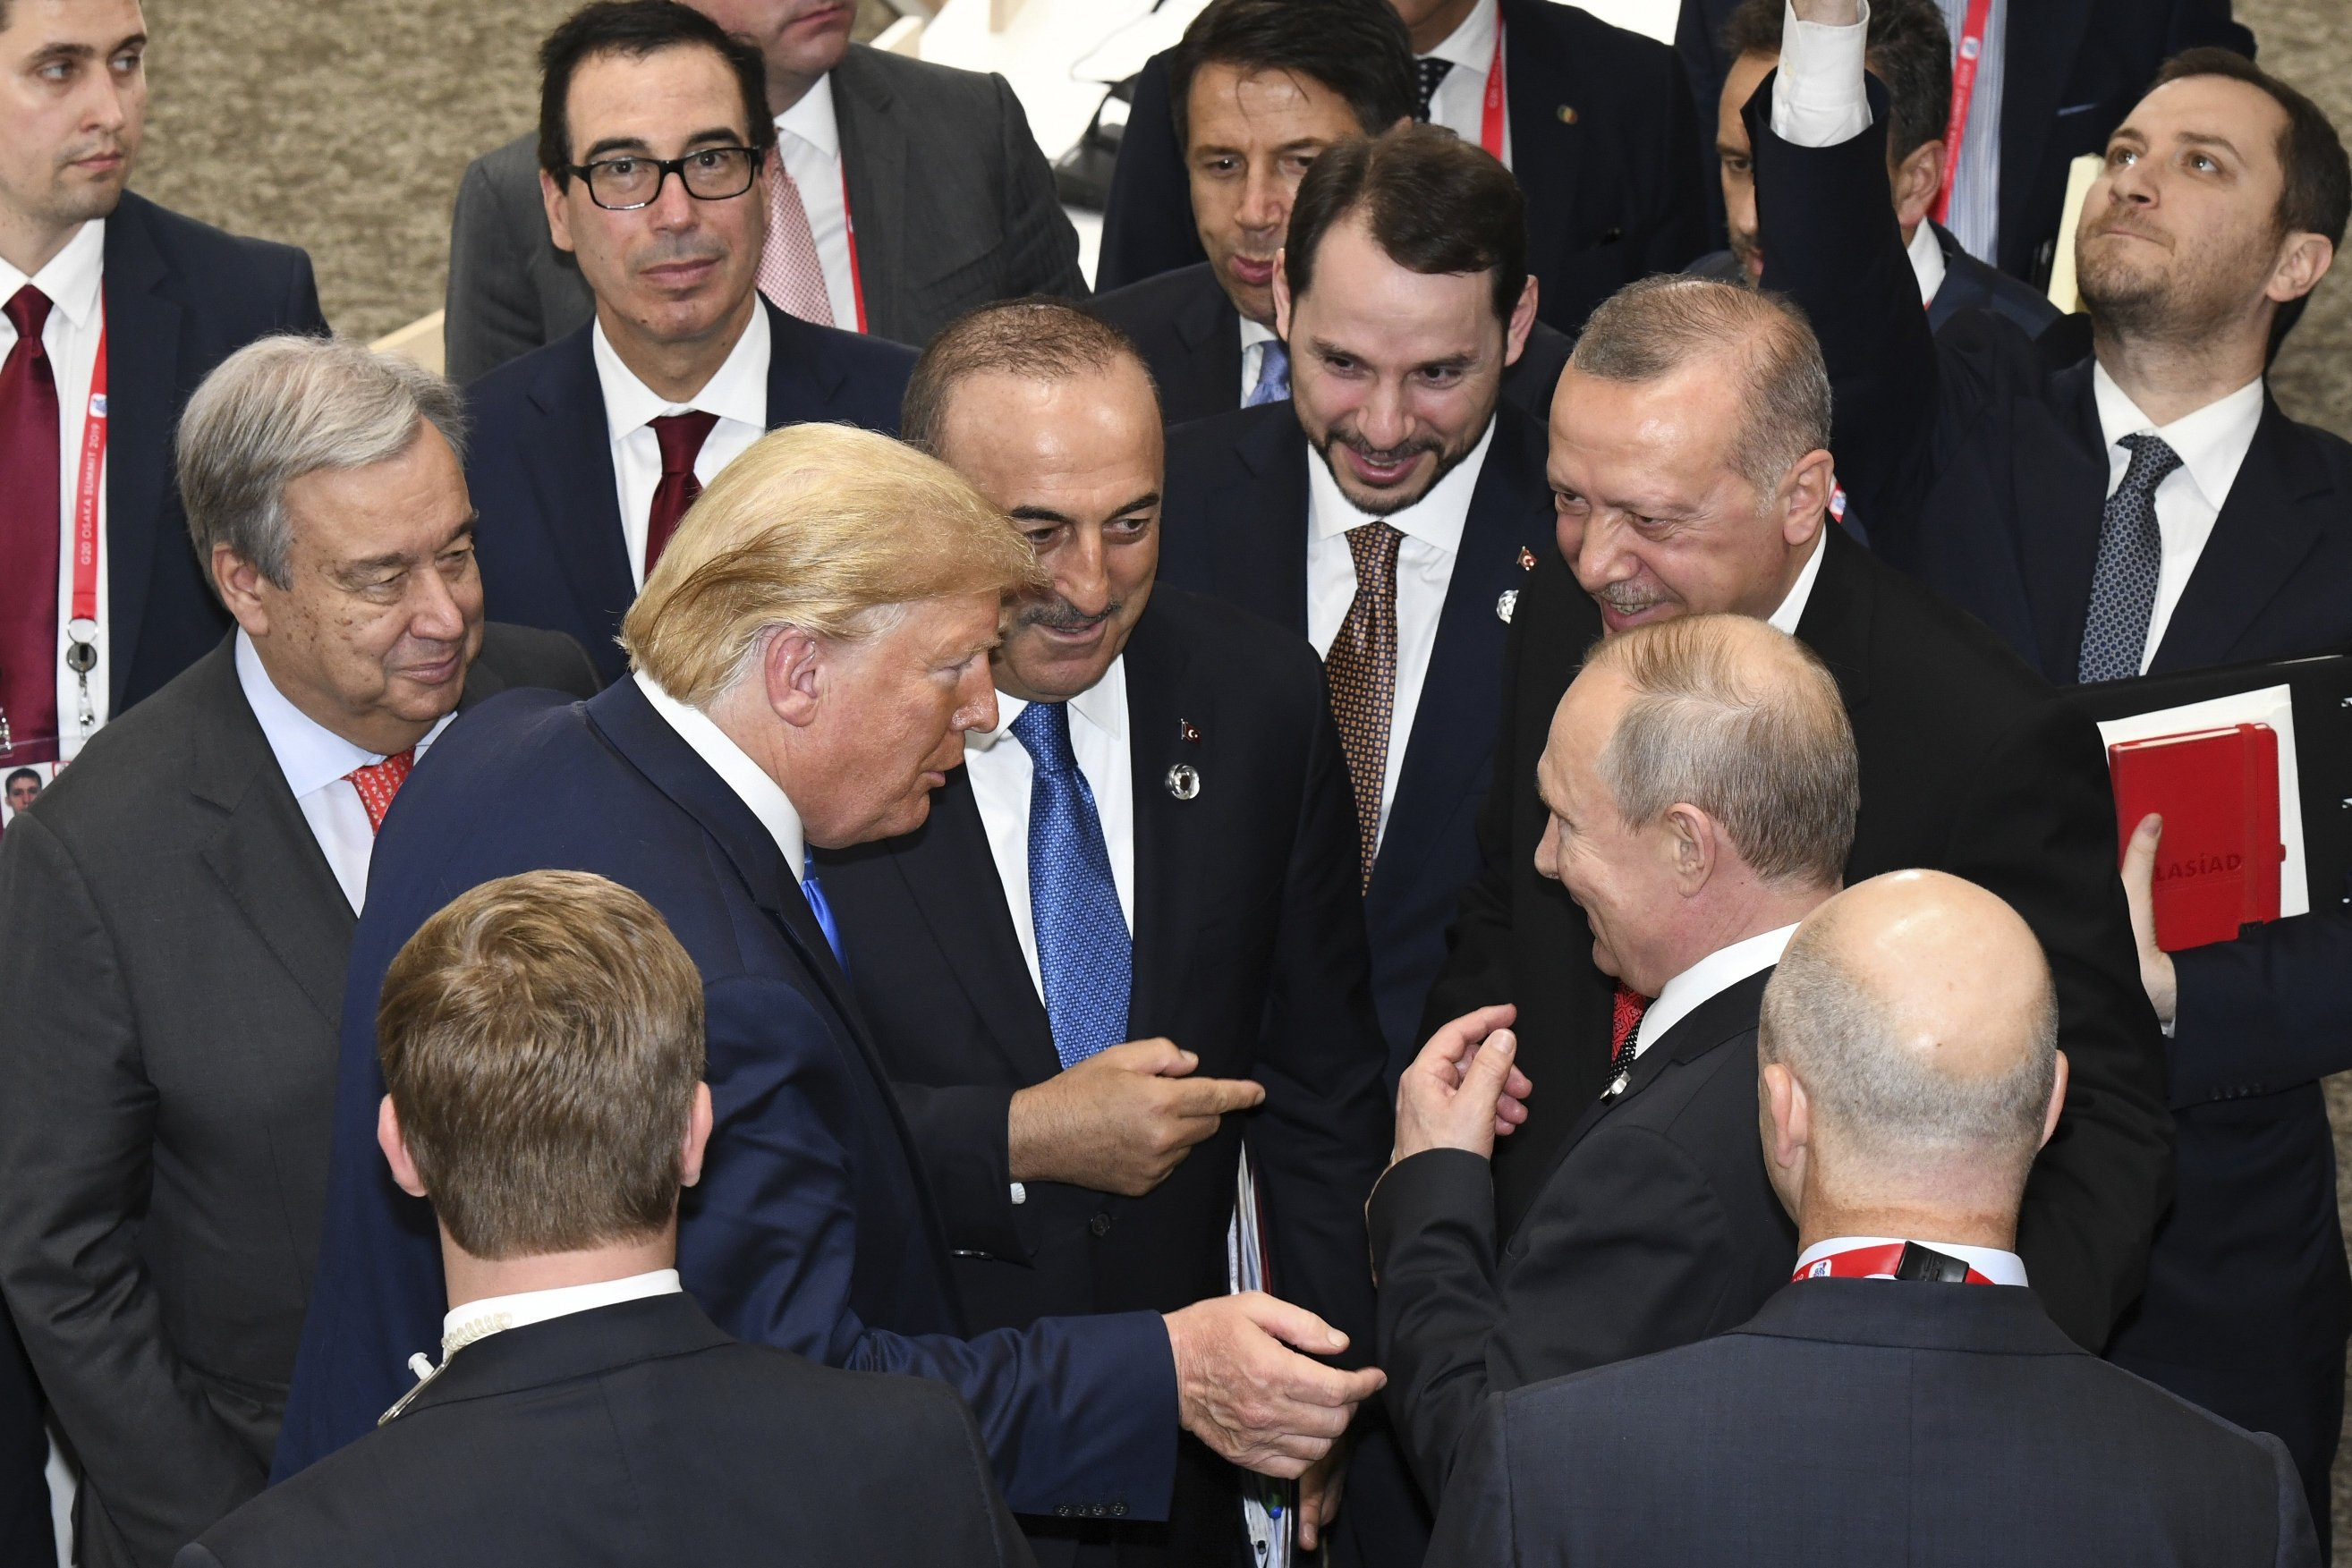 U.S President Donald Trump, center left, talks with Russian President Vladimir Putin, center right, as President Recep Tayyip Erdoğan, second right, and United Nations Secretary-General Antonio Guterres, second left, look on, on the sidelines of the G-20 summit in Osaka, Japan, June 29, 2019.